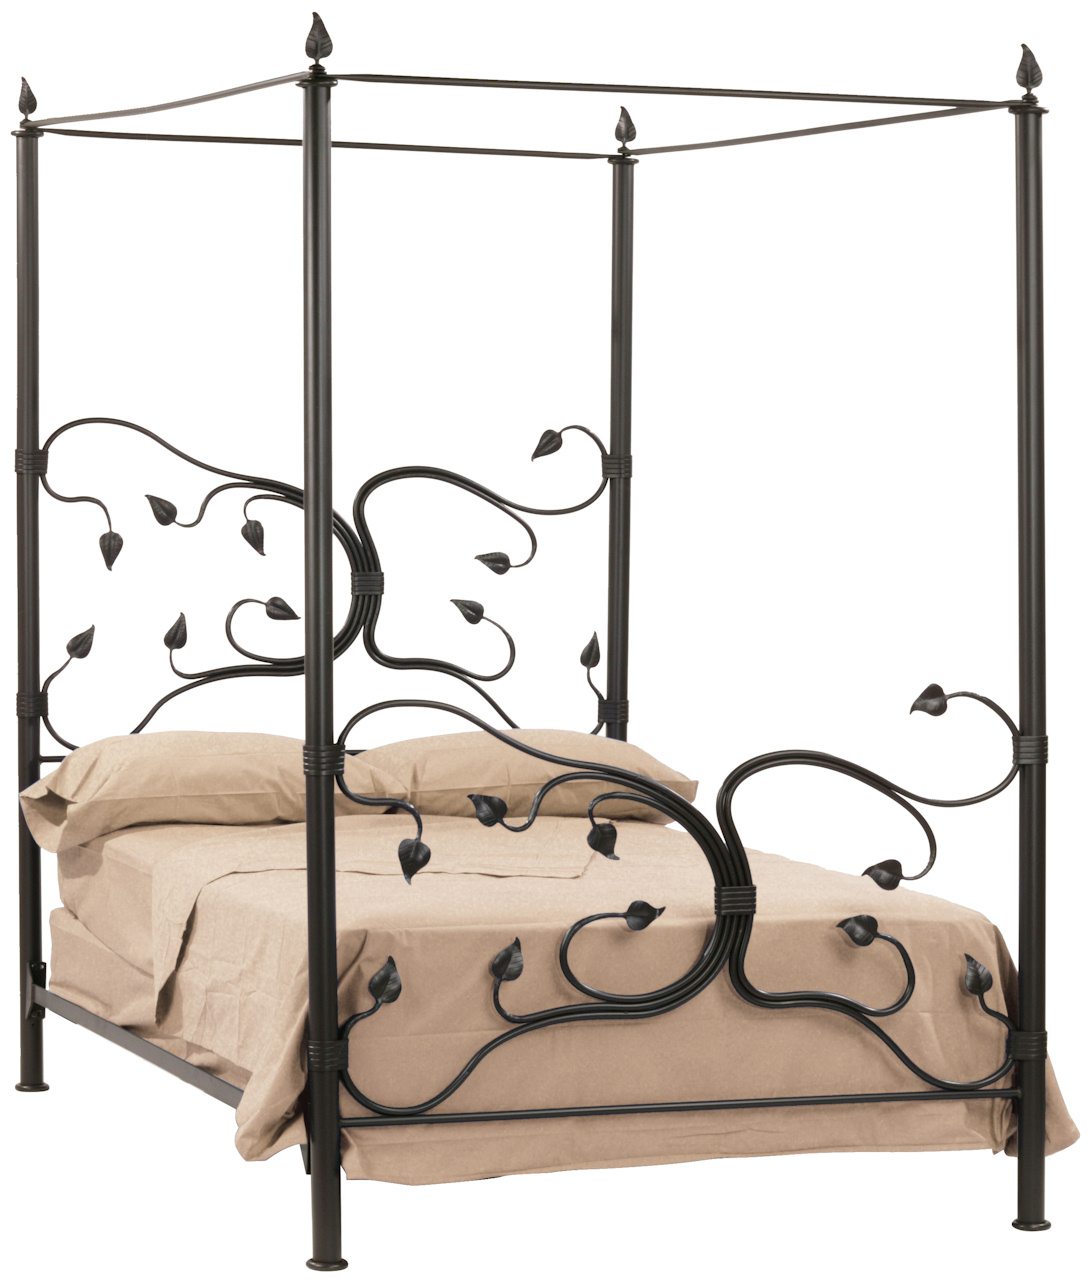 Canopy Bed.Queen Wrought Iron Canopy Bed Metal Tree Bed Frame